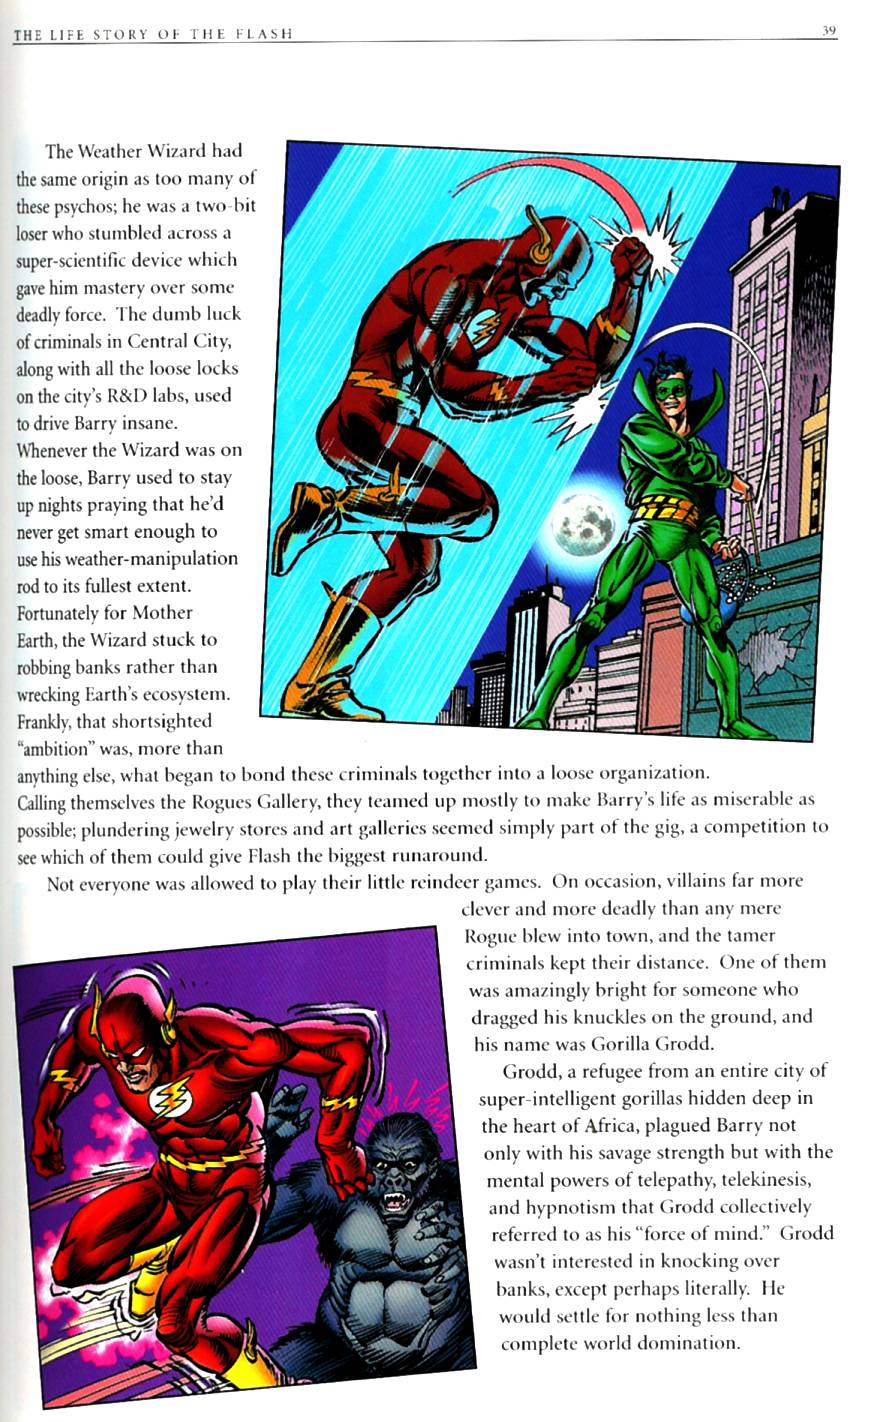 Read online The Life Story of the Flash comic -  Issue # Full - 41